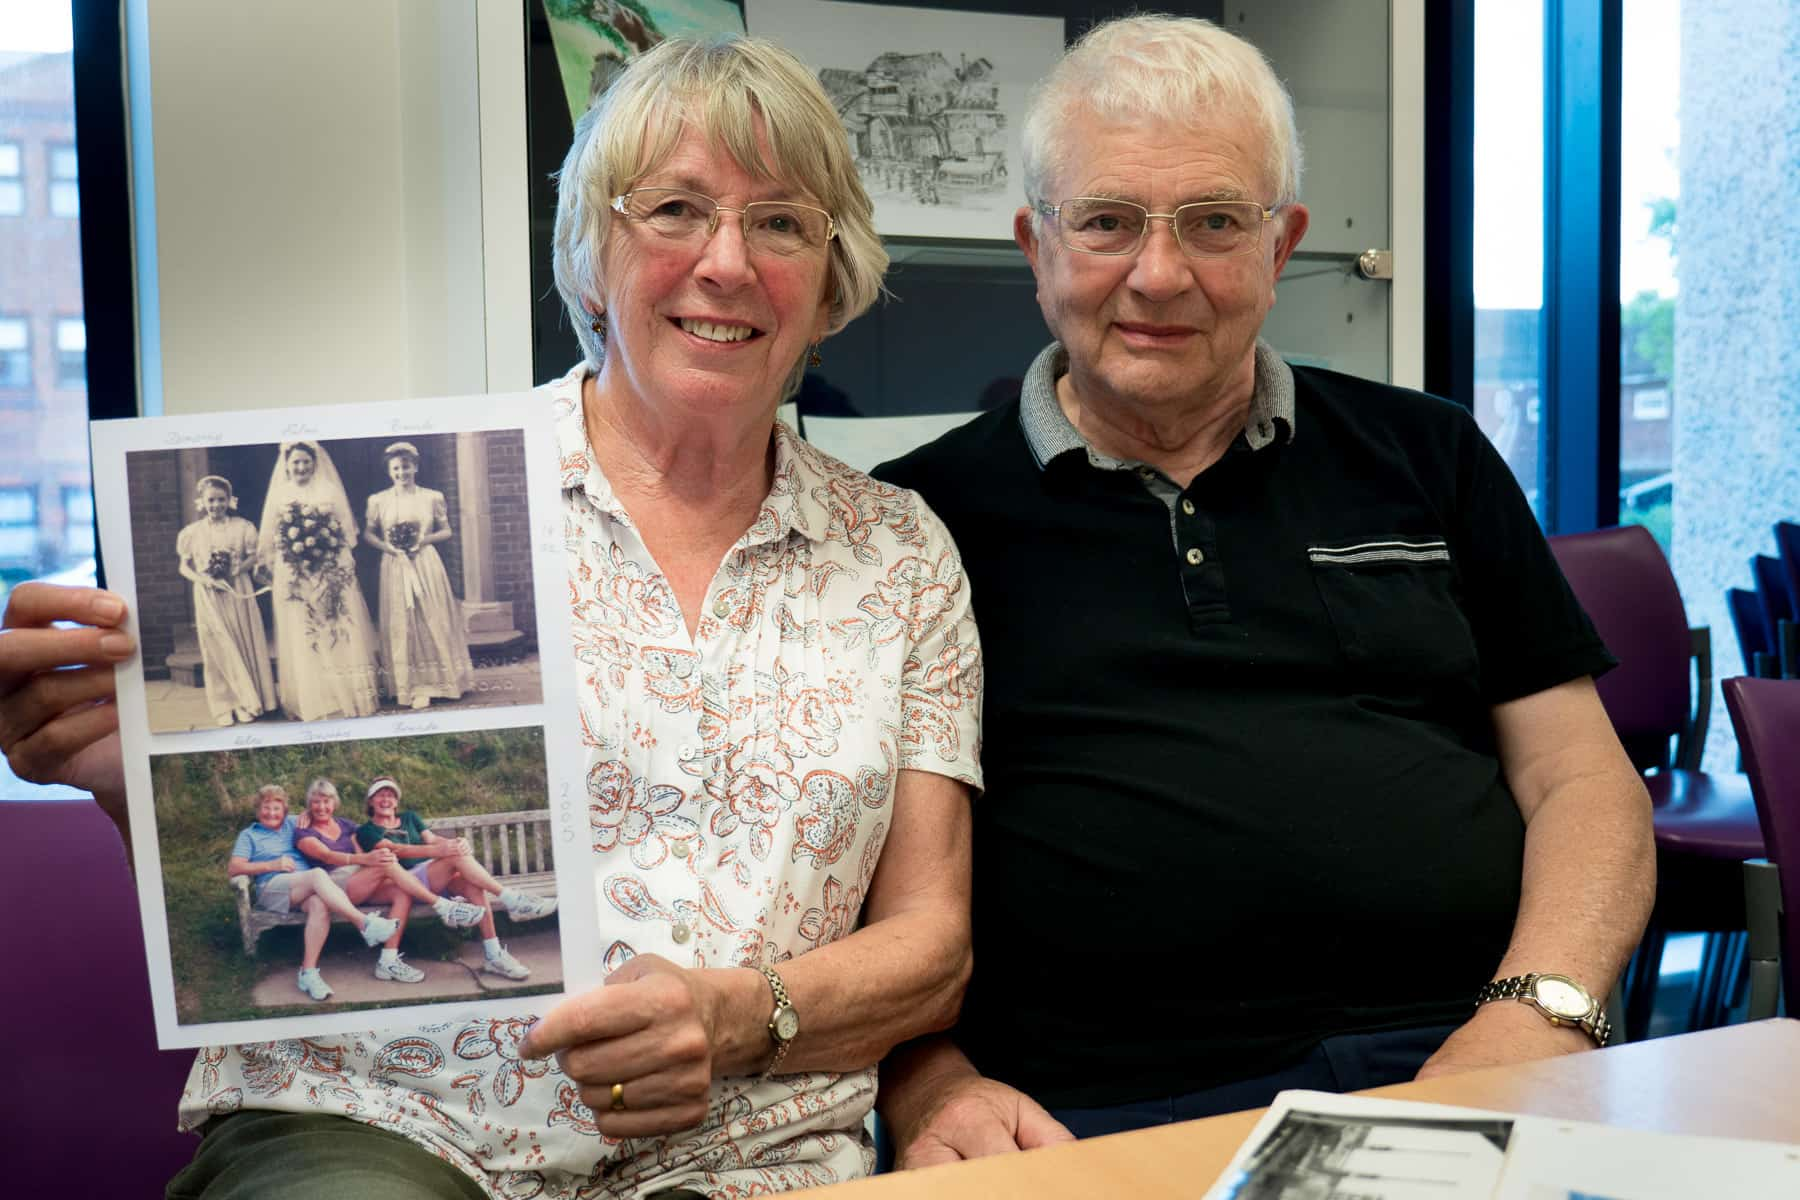 Gary and Dorothy photographed in May 2018. Dorothy is holding two photos placed together. The top photo shows the wedding her of sister Edna in 1952 at St Hilda's Church, Oldbury with herself and other sister Brenda as bridesmaids. The bottom photograph show the three sisters taken together in 2014.